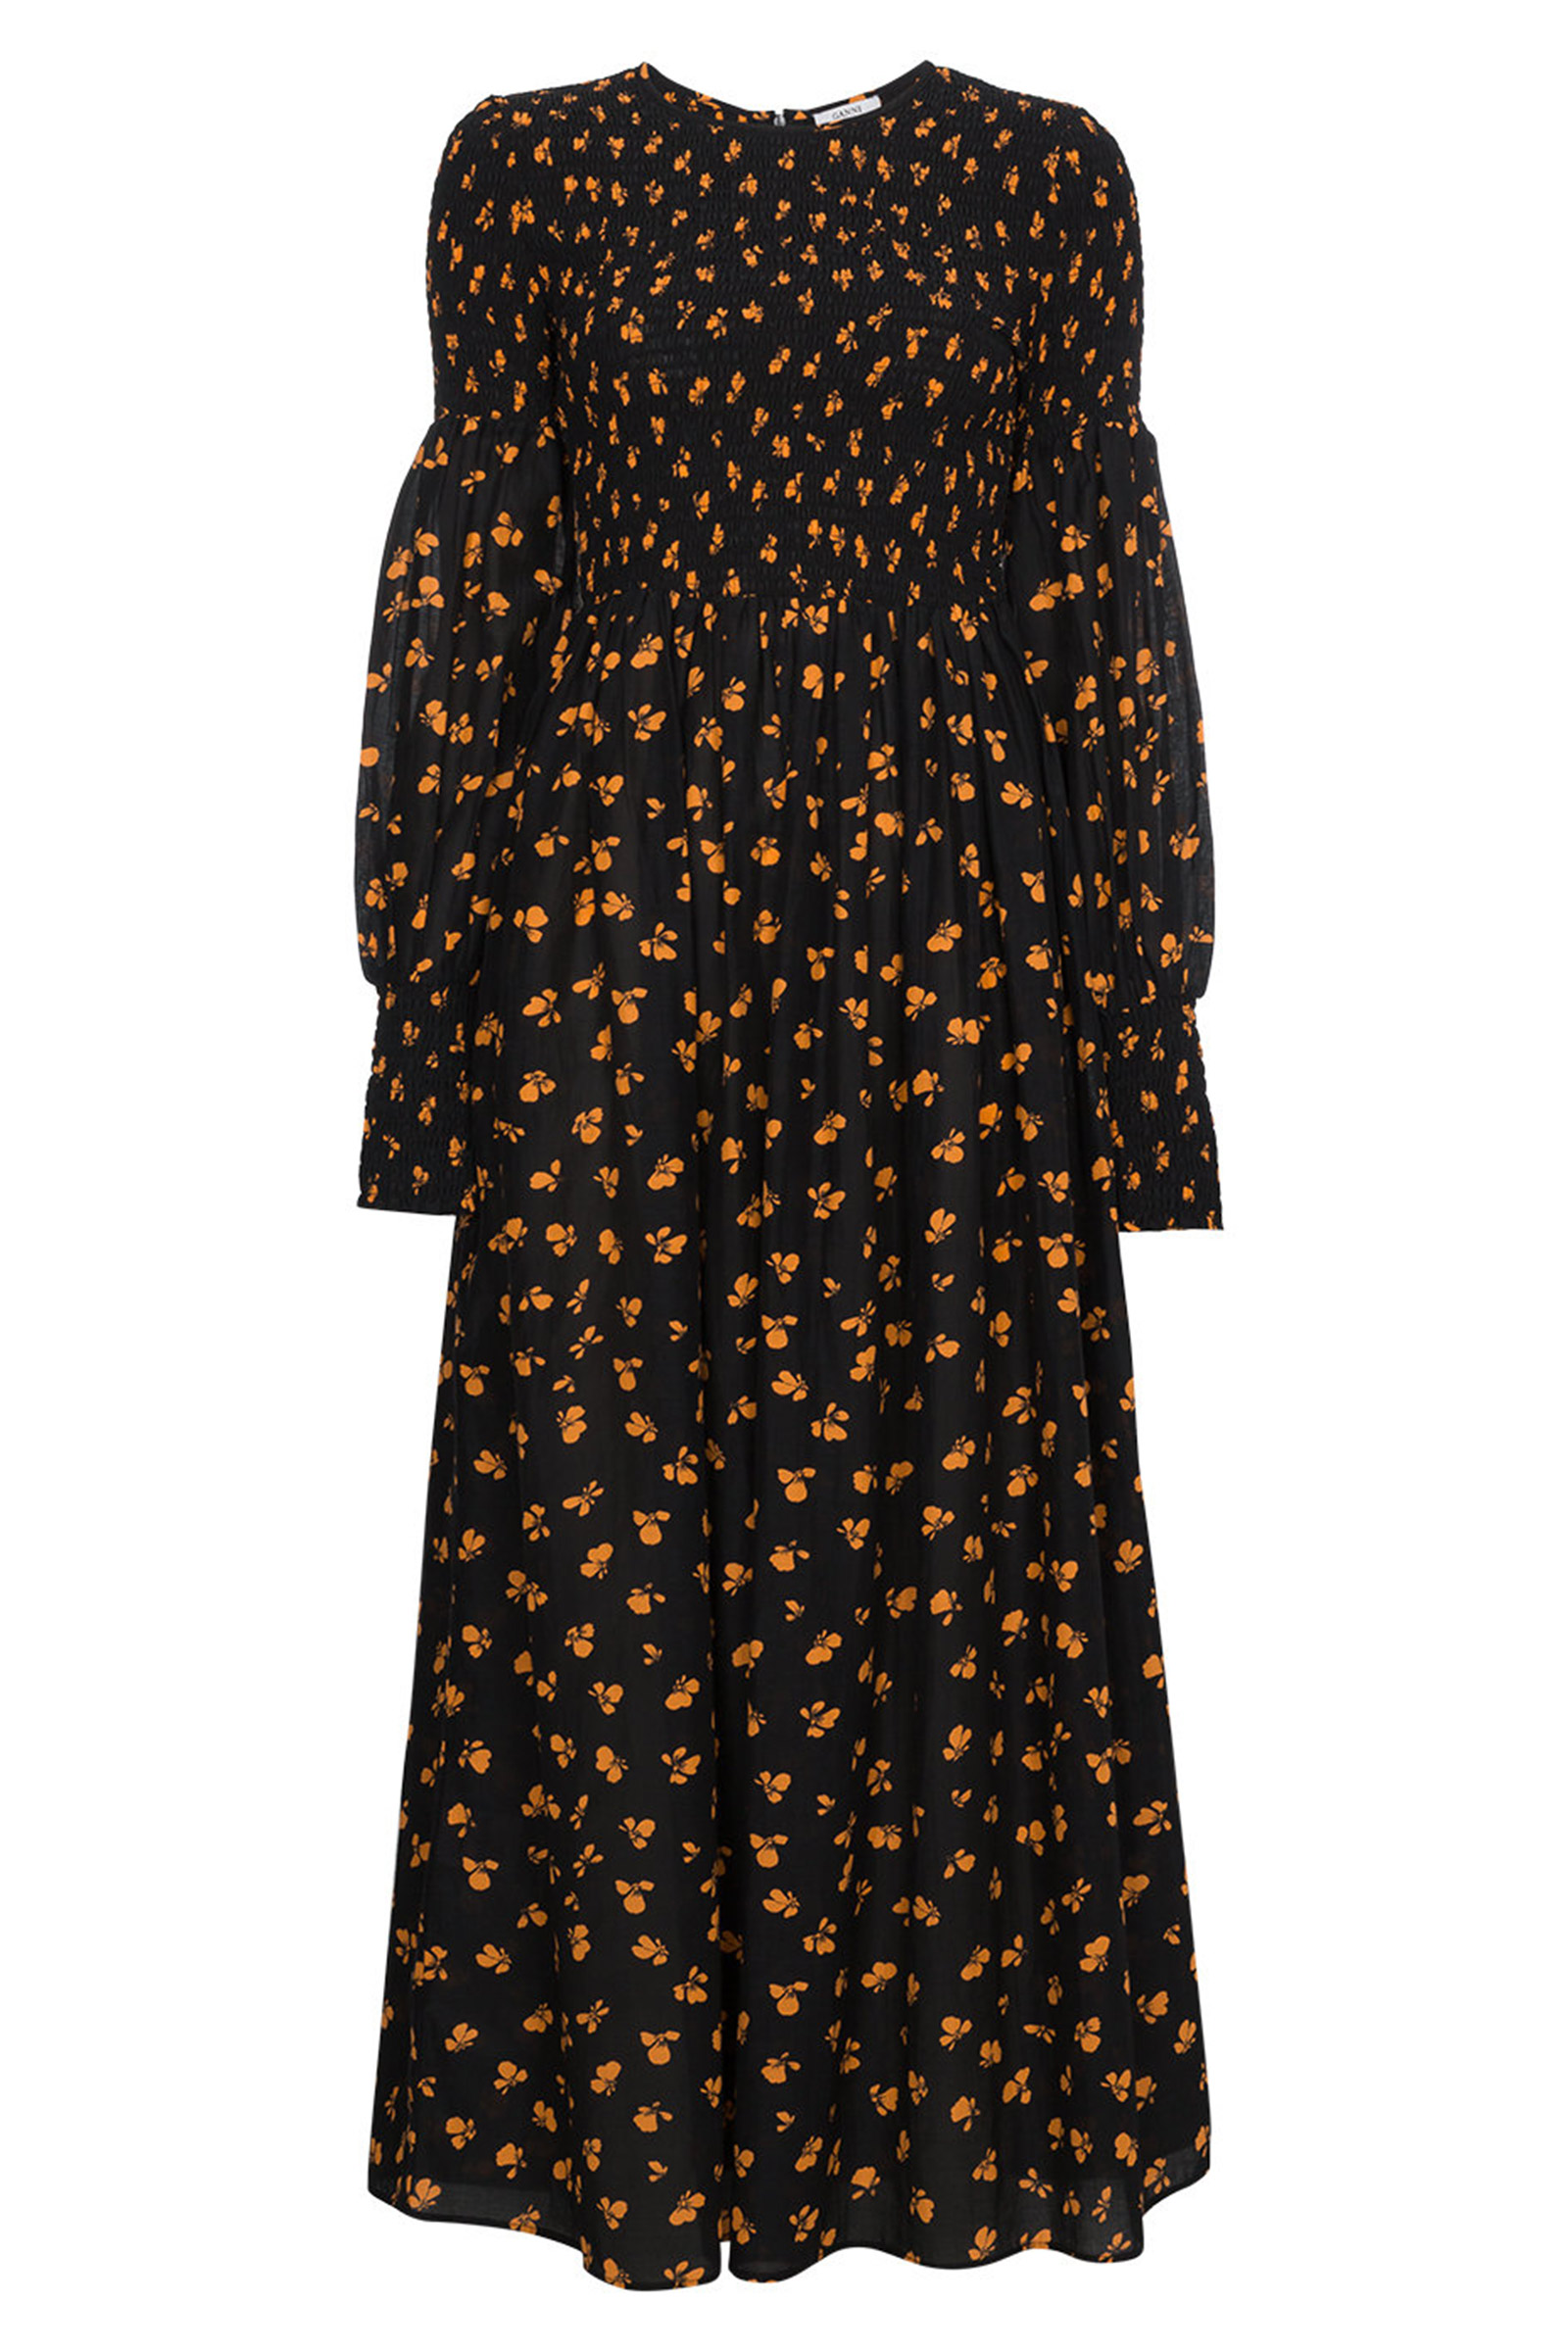 160a0af8 Buy Ganni Beacon Print Smocked Maxi Dress Online